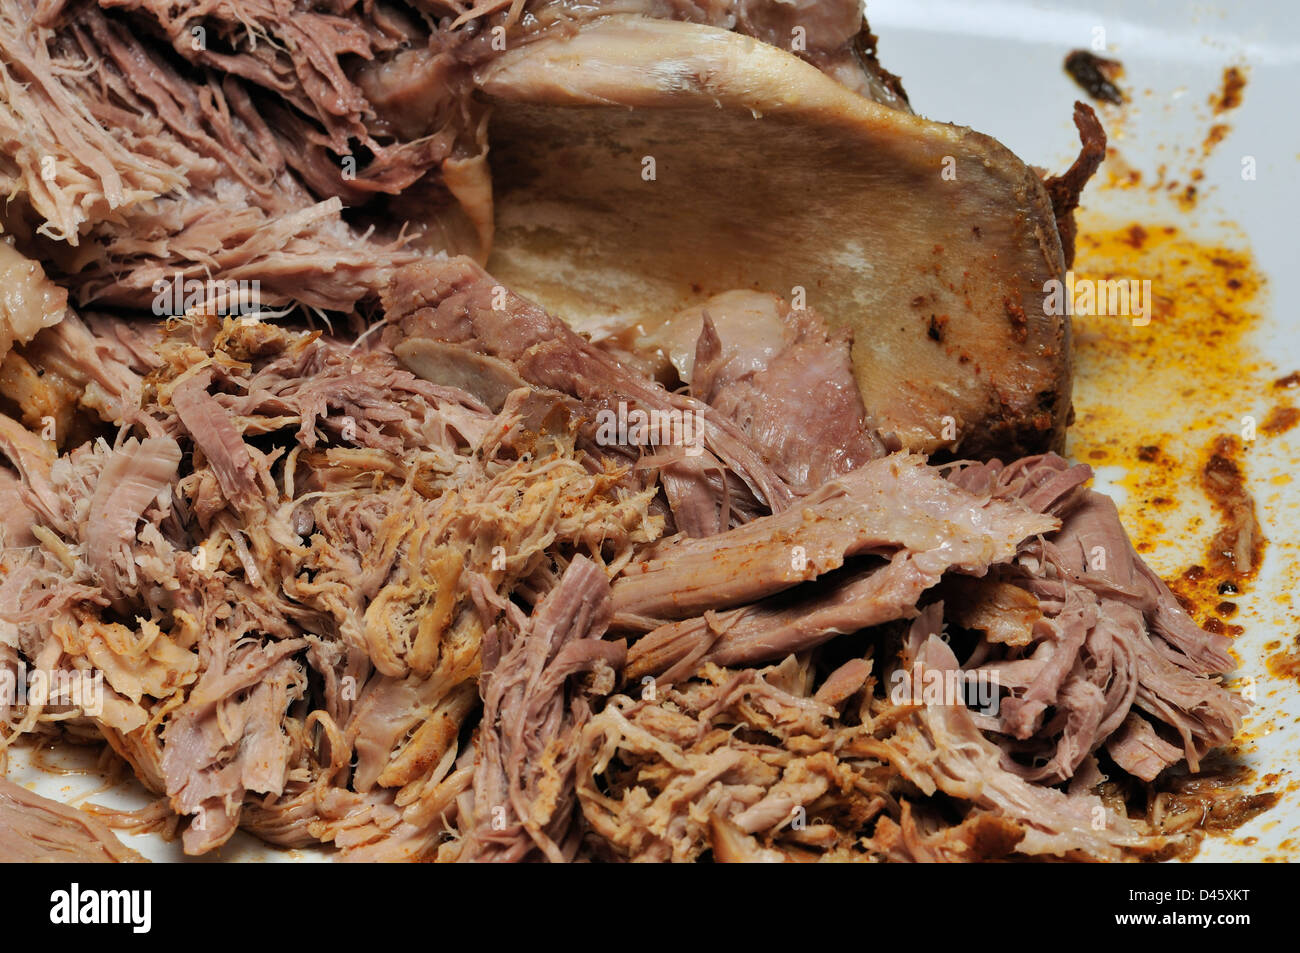 Pulled pork - slow-cooked pork pulled apart - Stock Image